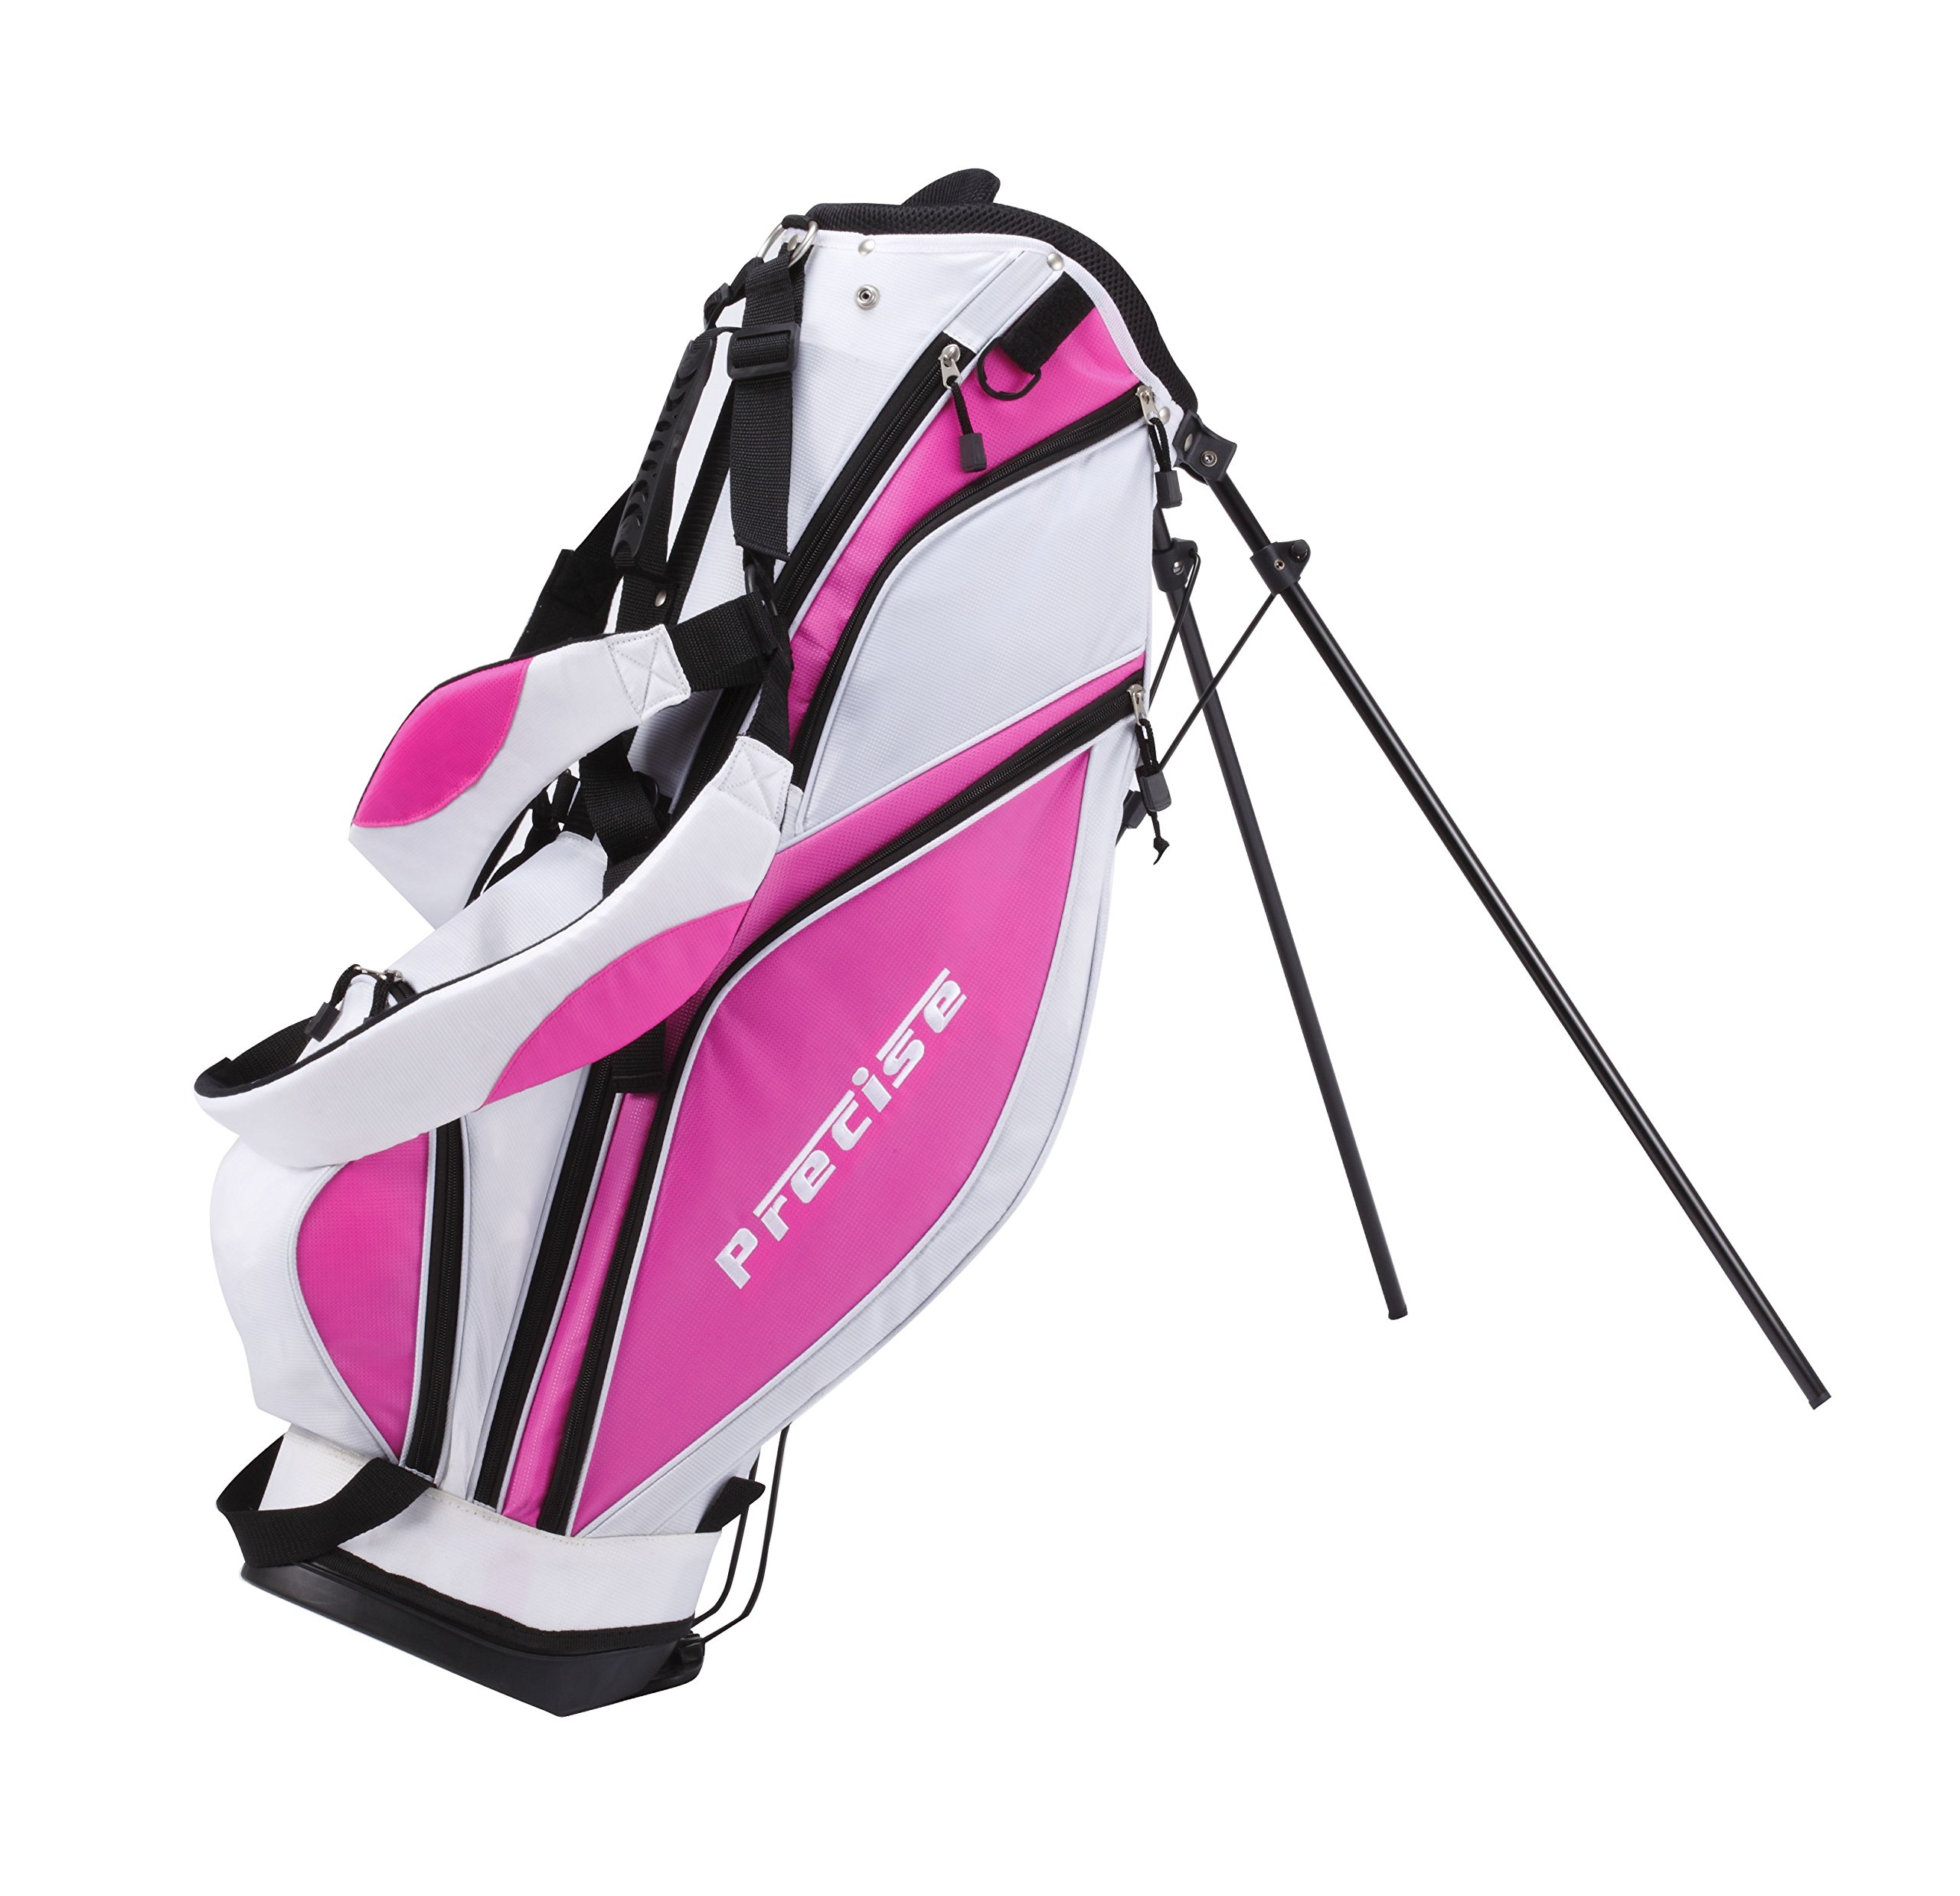 Precise Premium Ladies Womens Complete Golf Clubs Set Includes Driver, Fairway, Hybrid, S.S. 5-PW Irons, Putter, Stand Bag, 3 H/C's (Pink, Right Hand) by PreciseGolf Co. (Image #6)